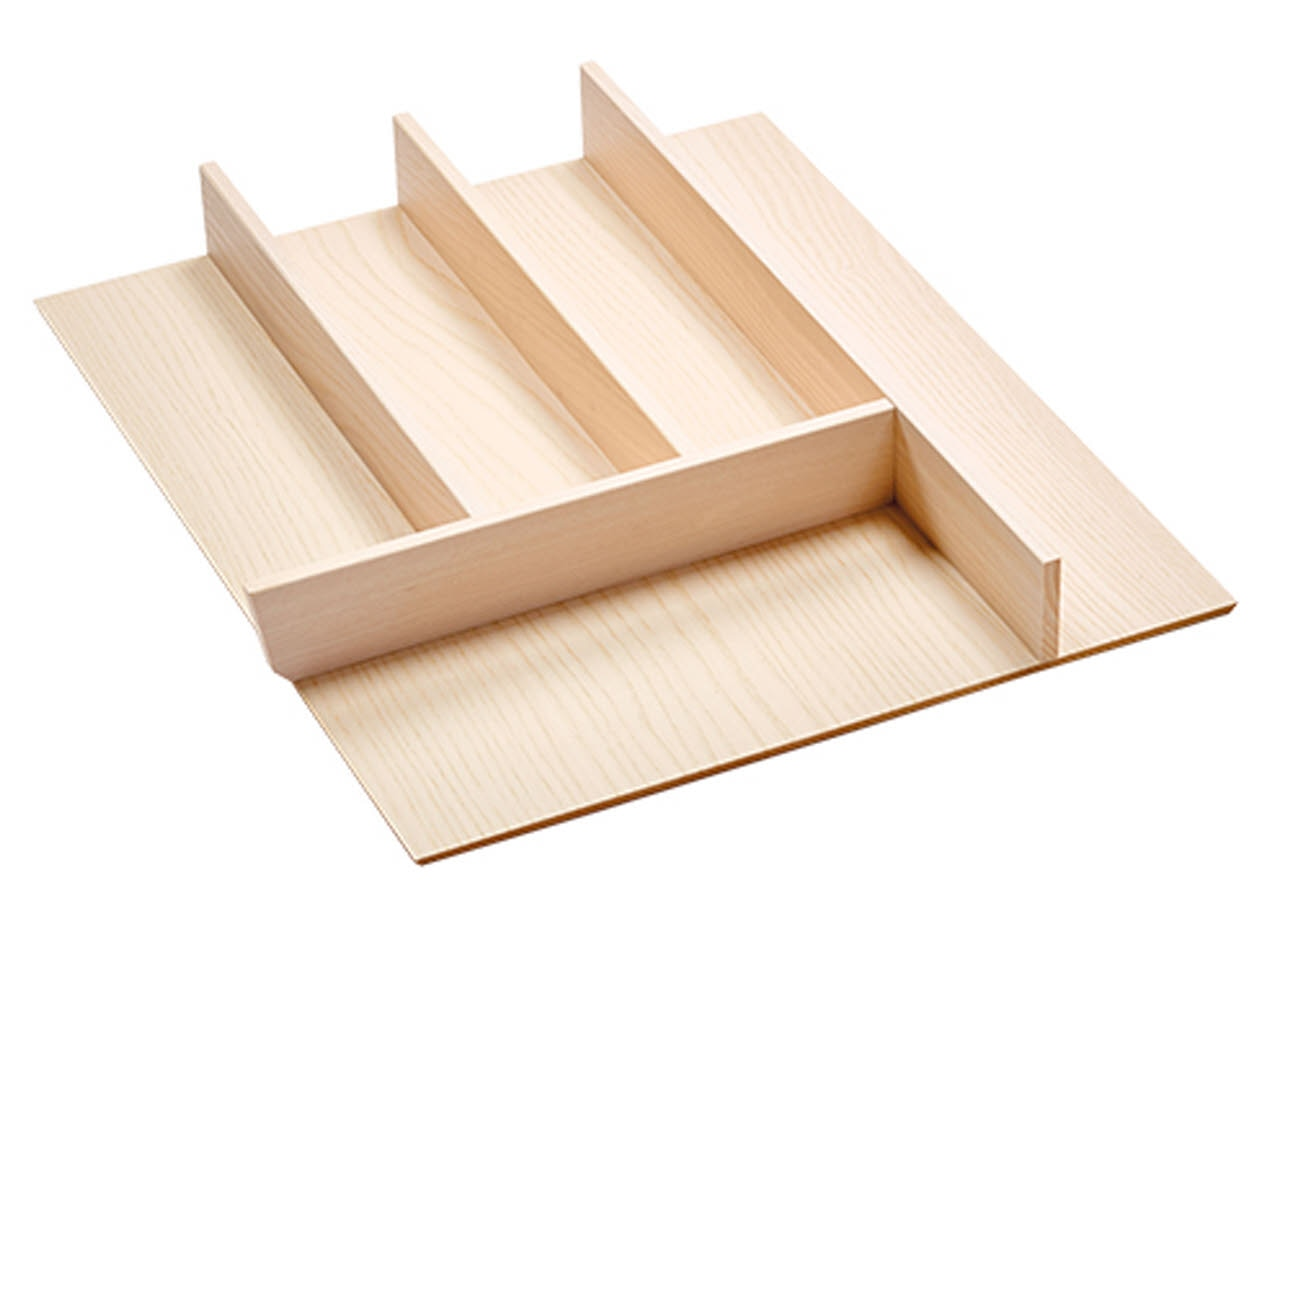 Cutlery tray light ash | HTH